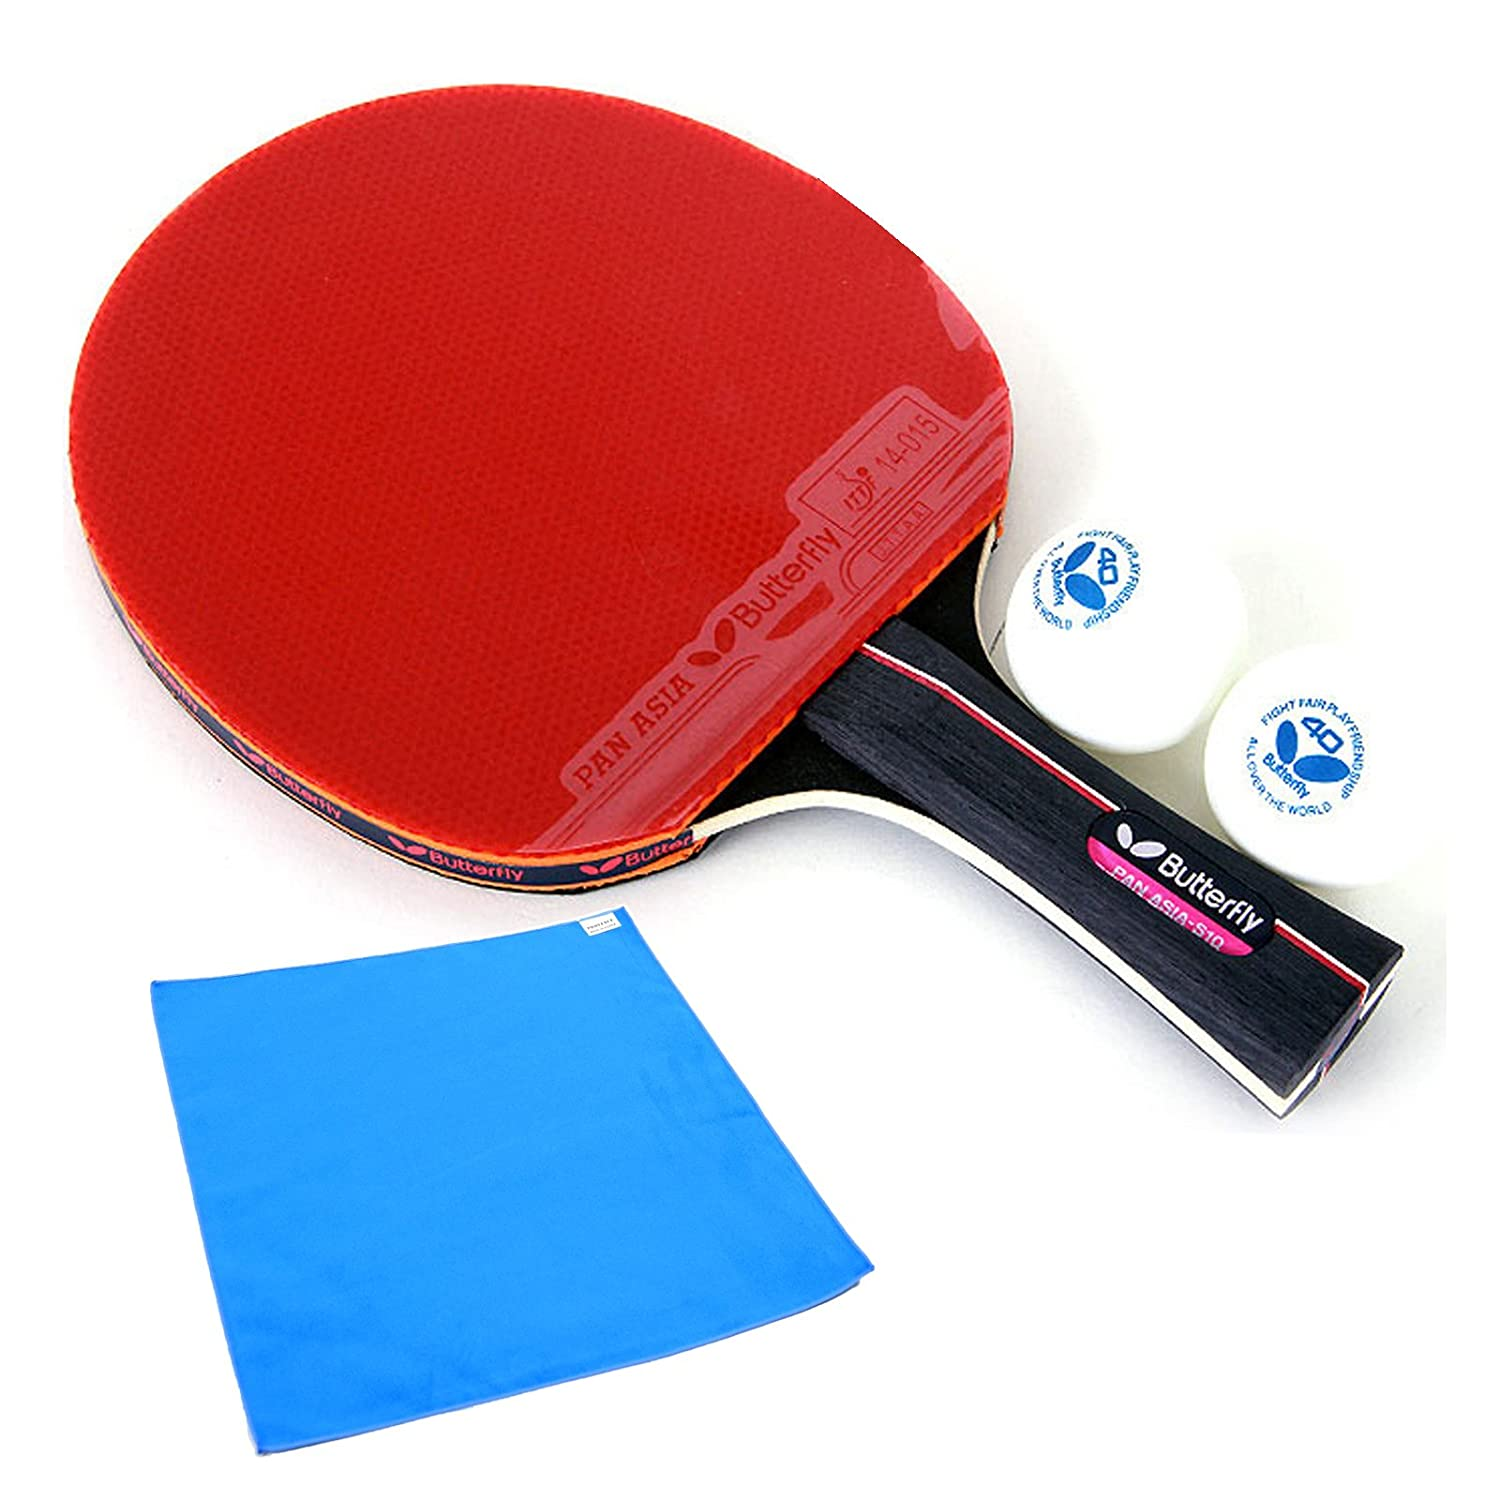 fl addoy table reviews tennis butterfly bats